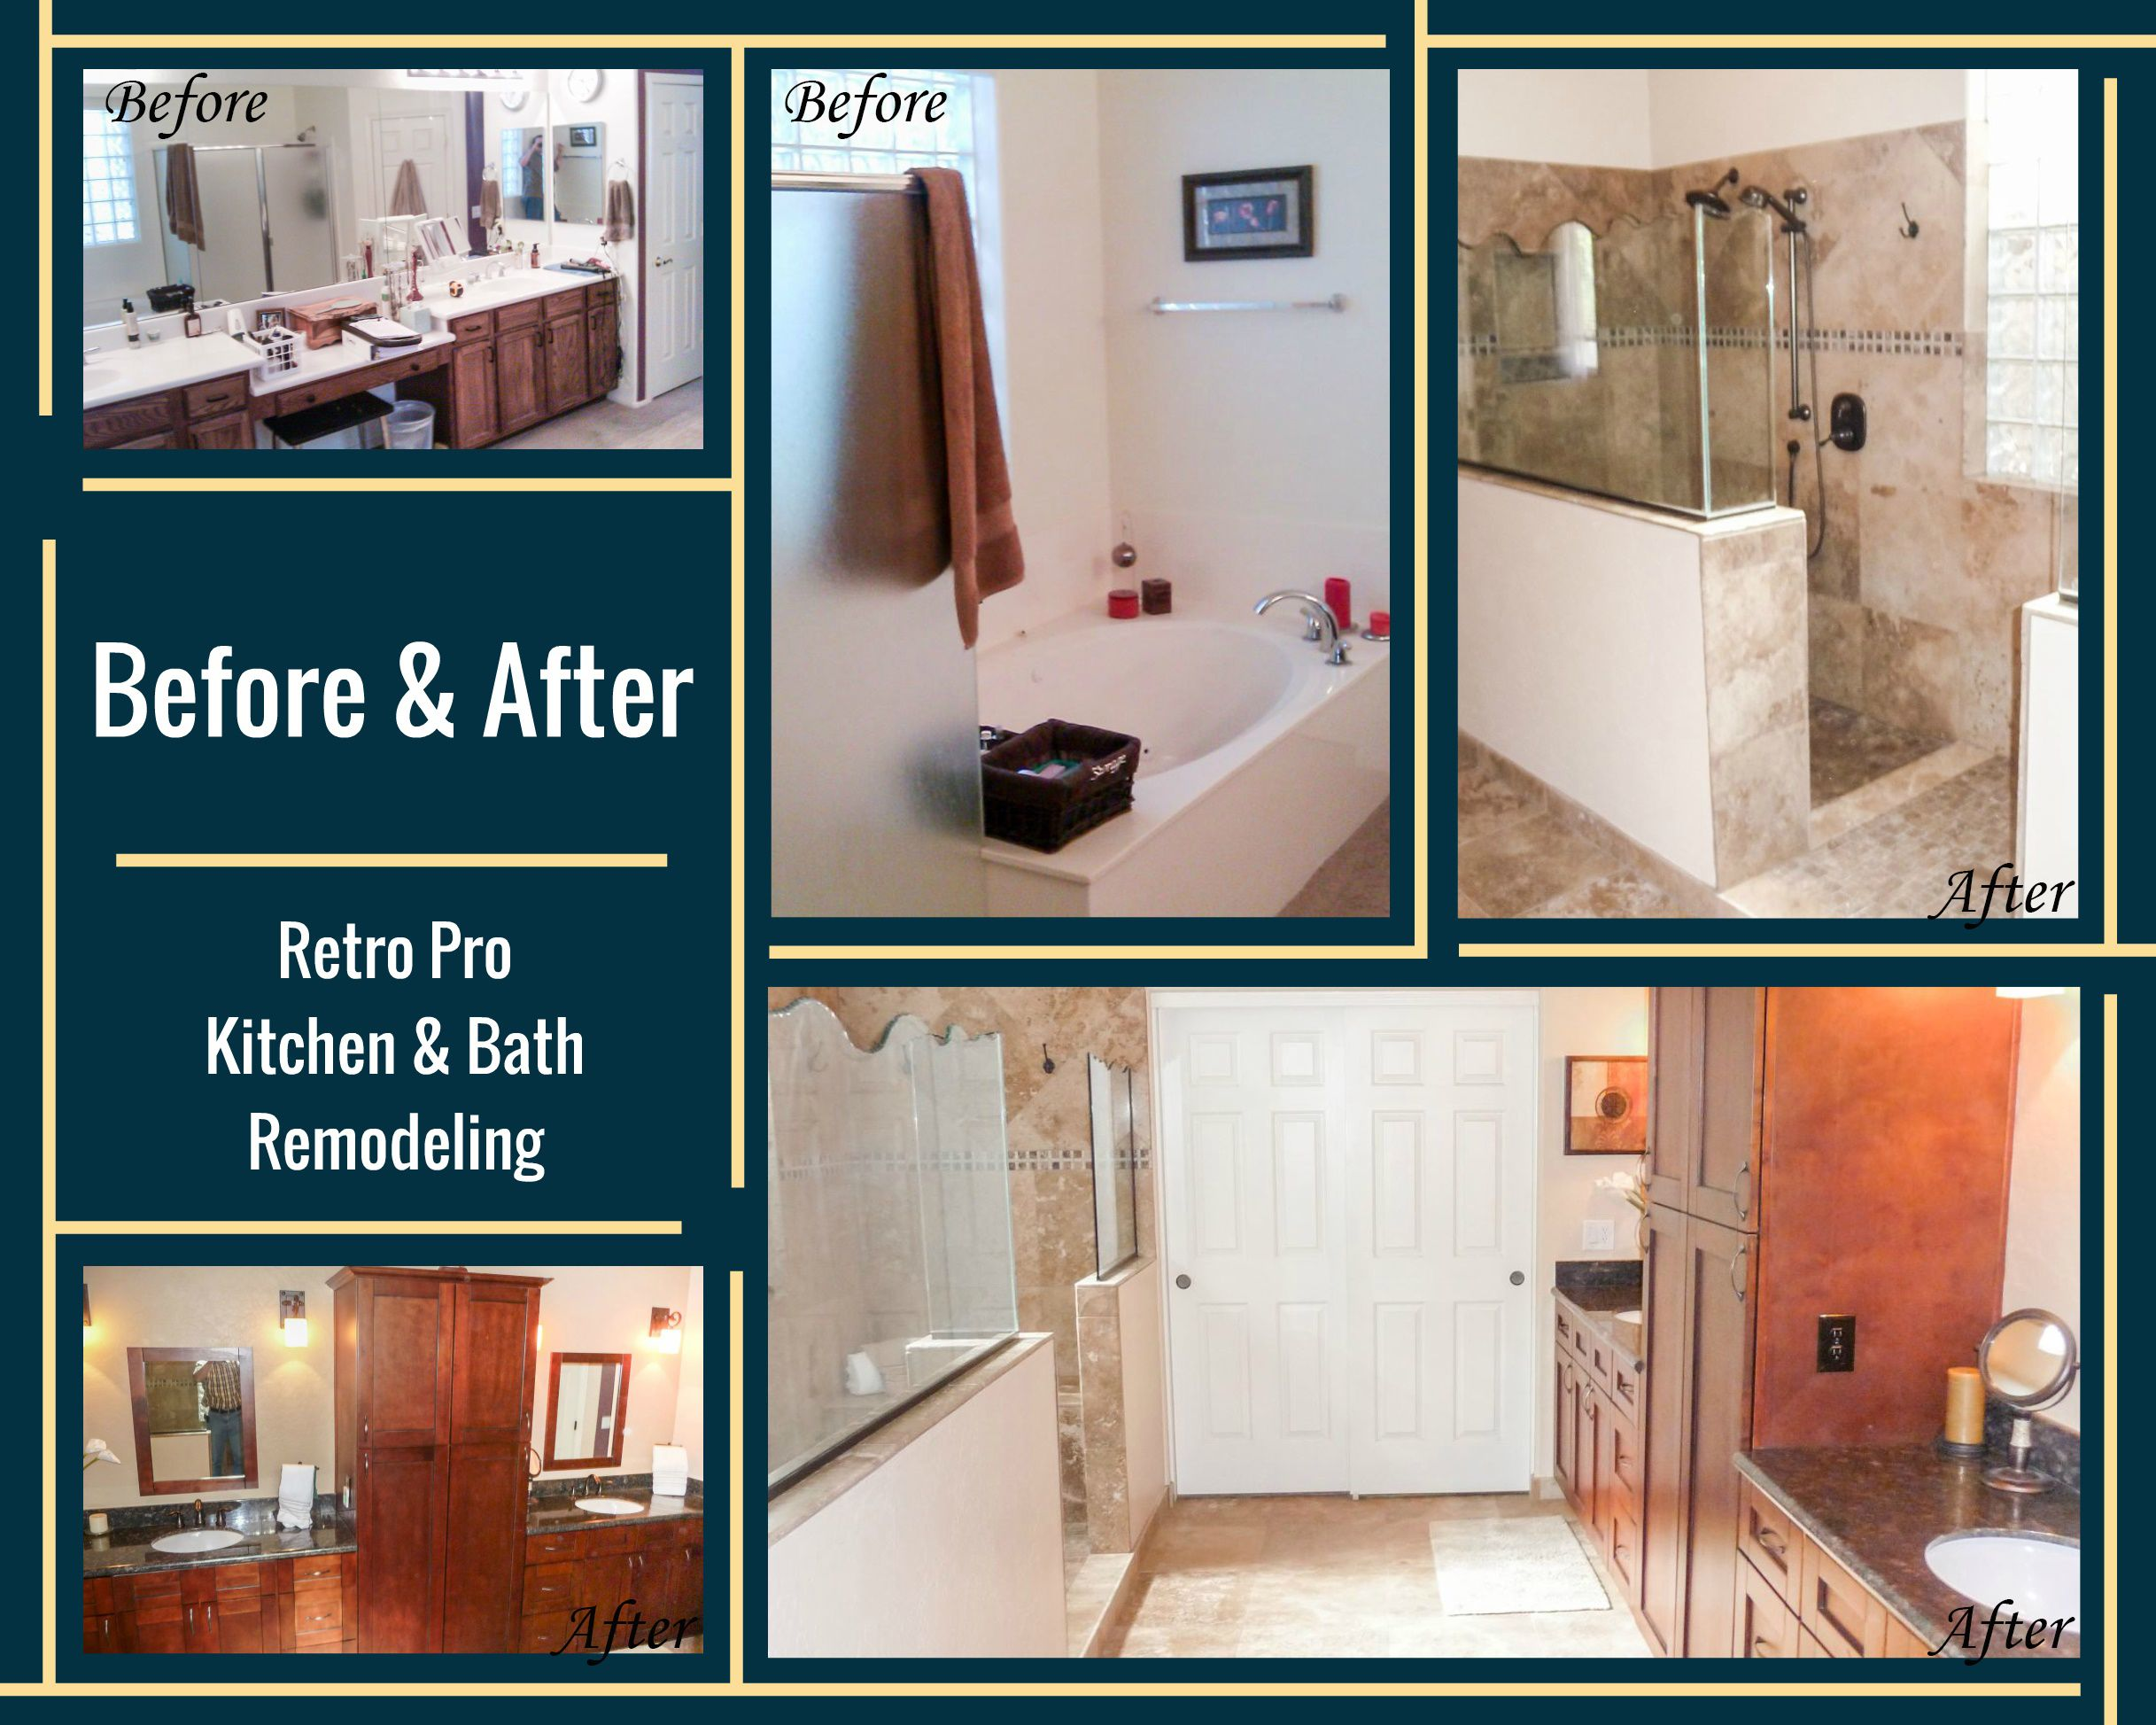 Pin by retro pro kitchen u bathroom remodeling on before and after